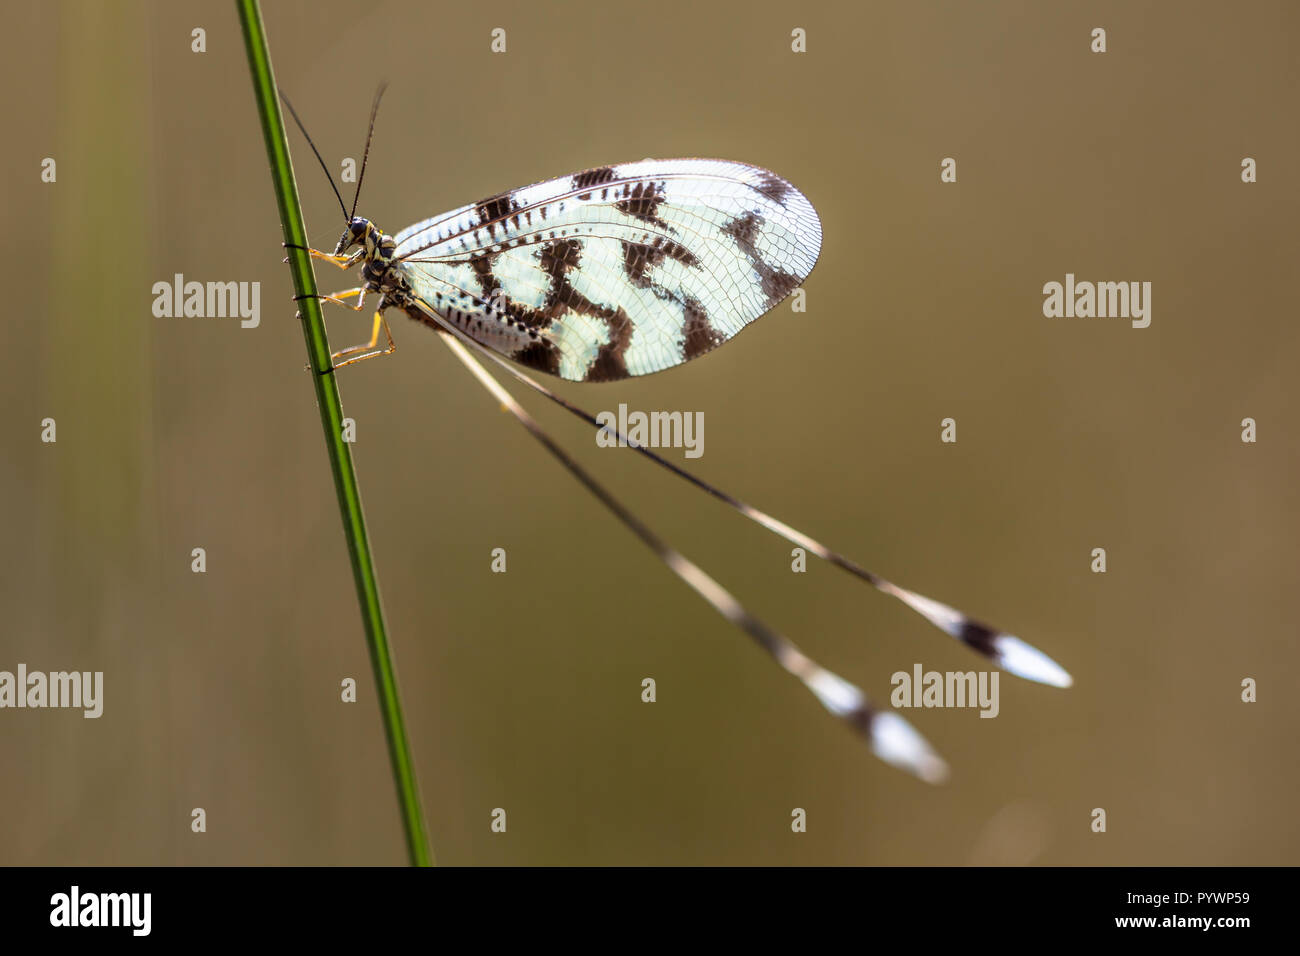 Colorful antlion relative Nemoptera is a Palearctic genus of insects of the family Nemopteridae or spoonwings. - Stock Image